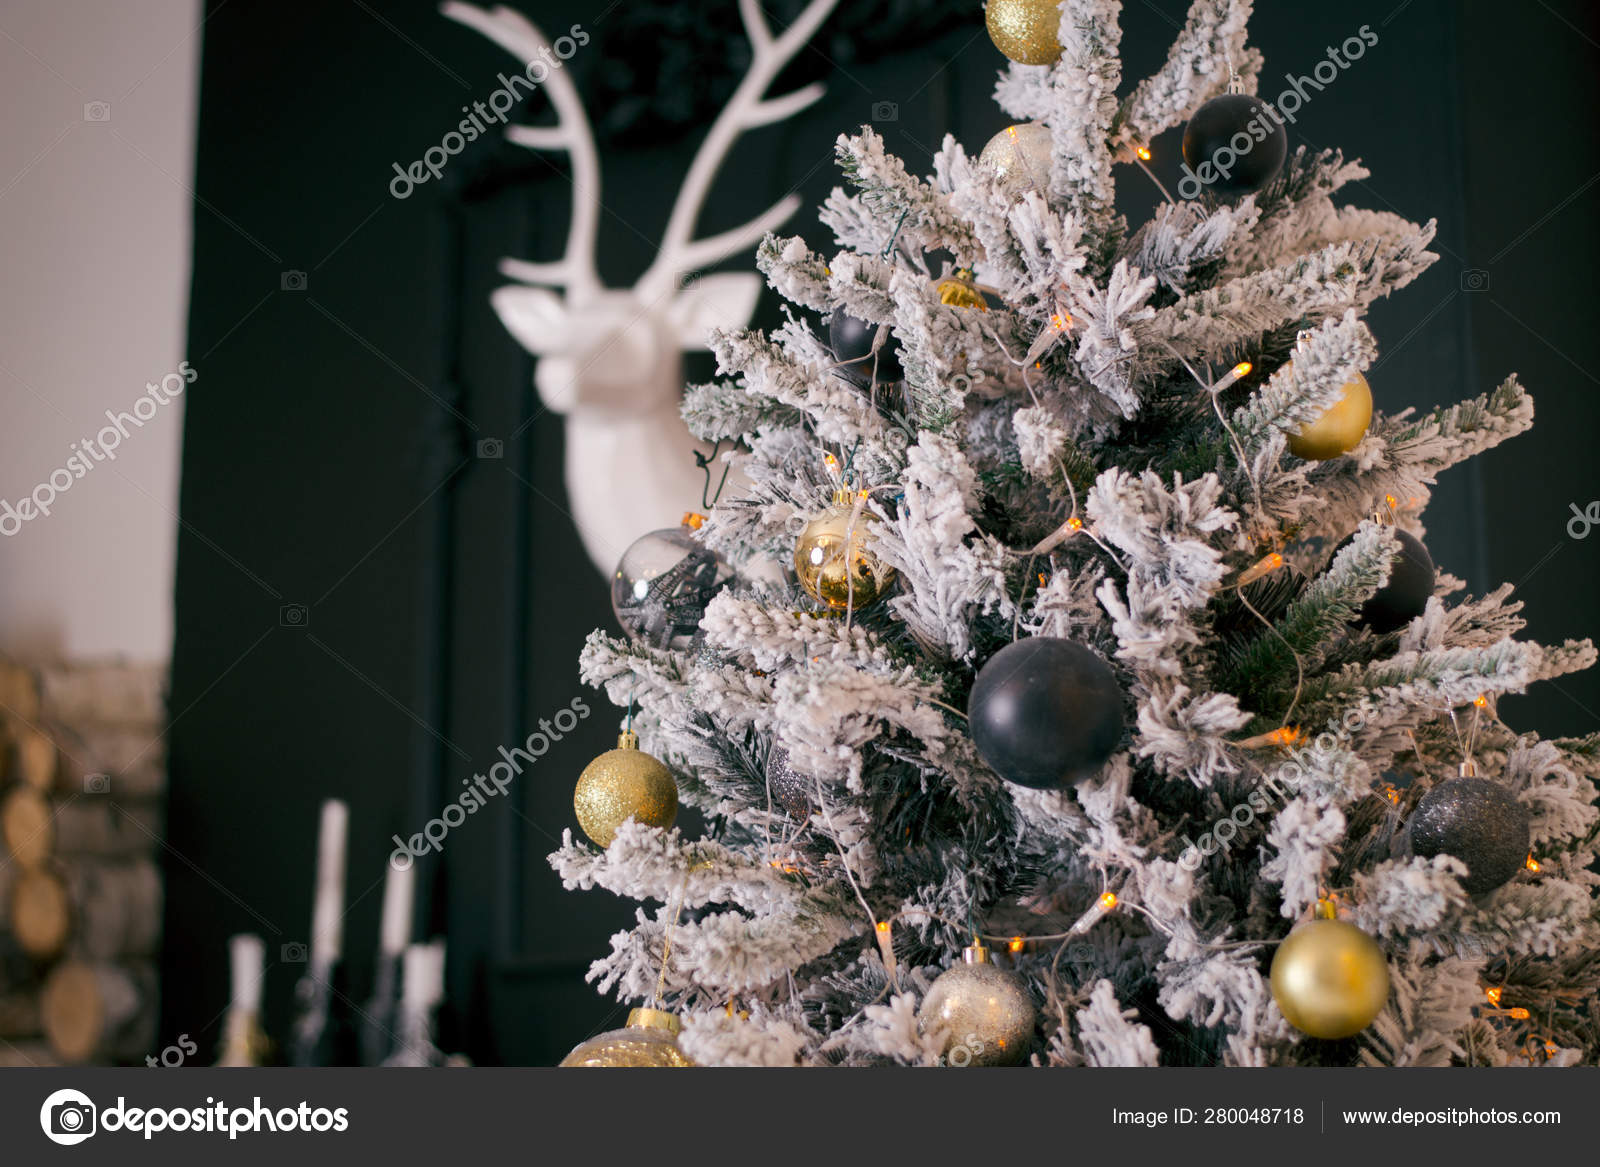 Dark Green Christmas Tree With White Artificial Snow On It Indoors Gothic Christmas Tree With Gold